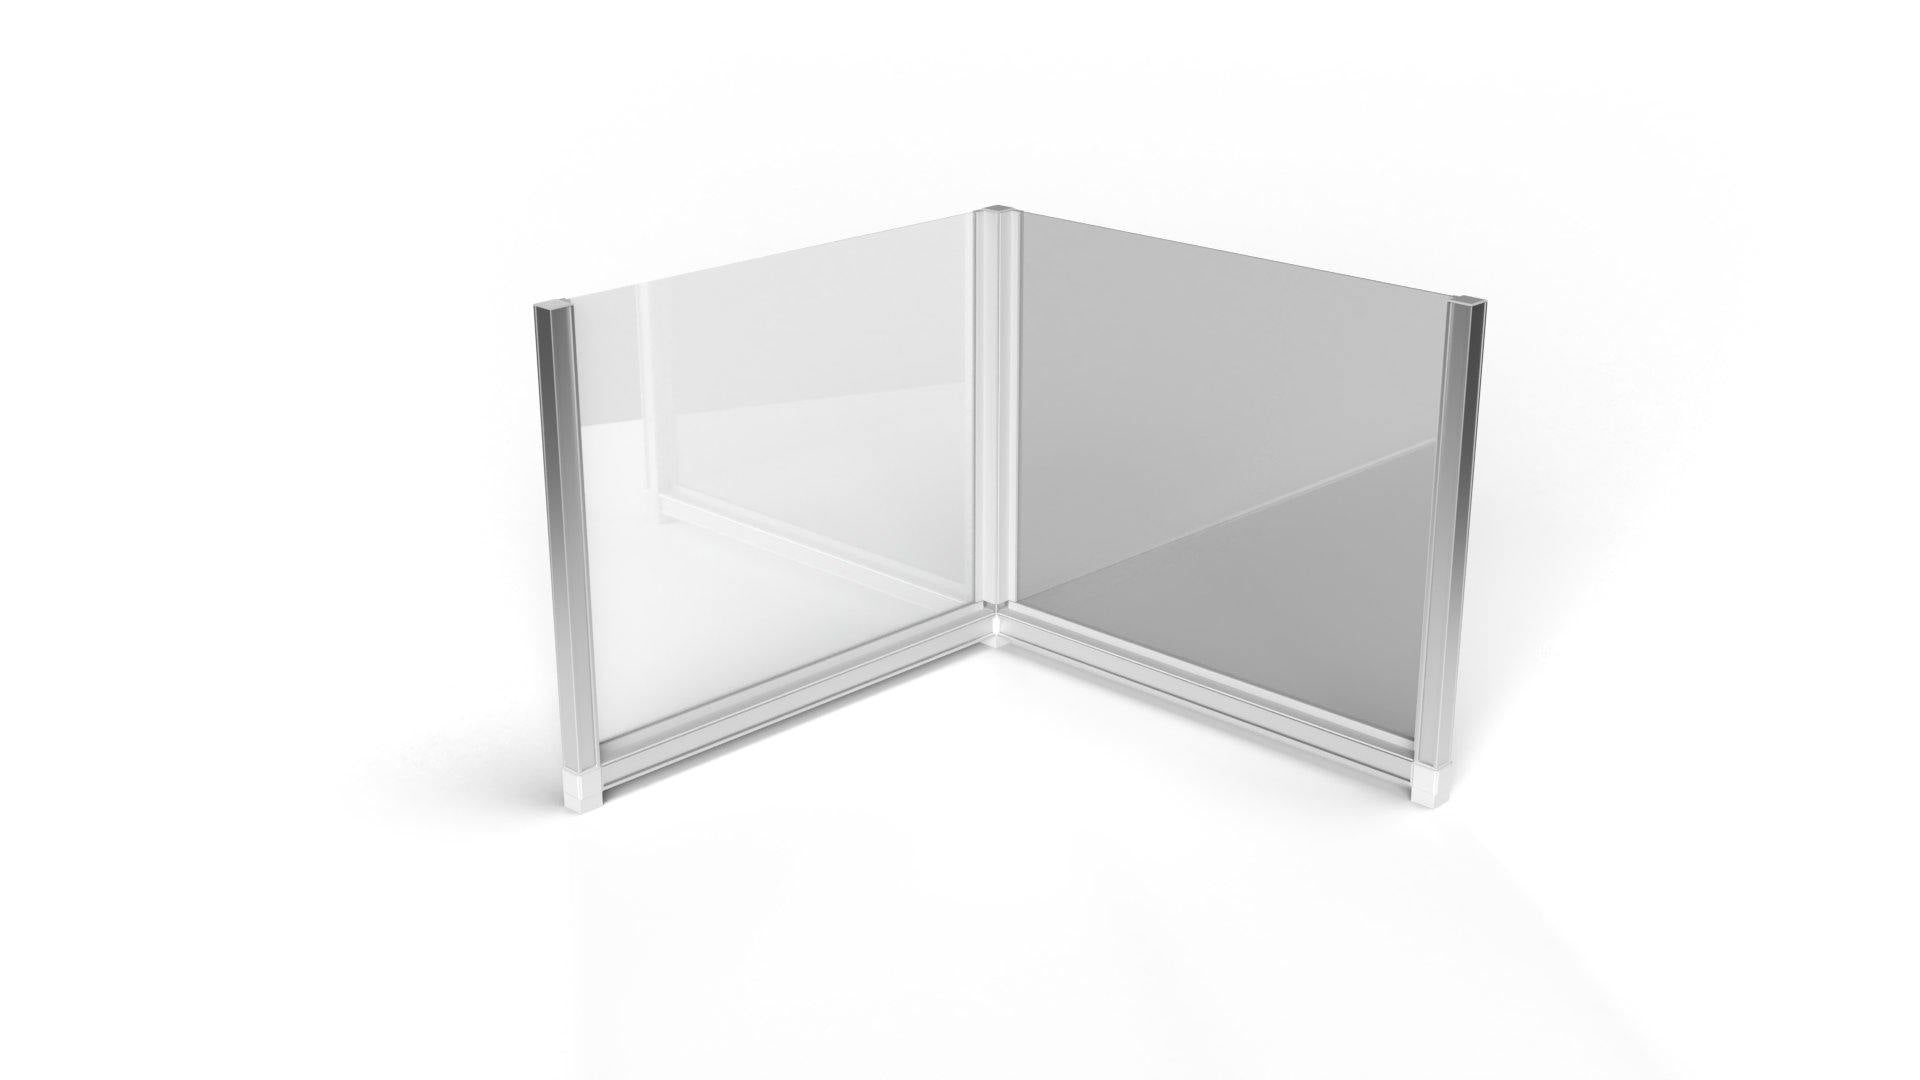 T3 Desk Dividers - U & L Shape - TecnaCare